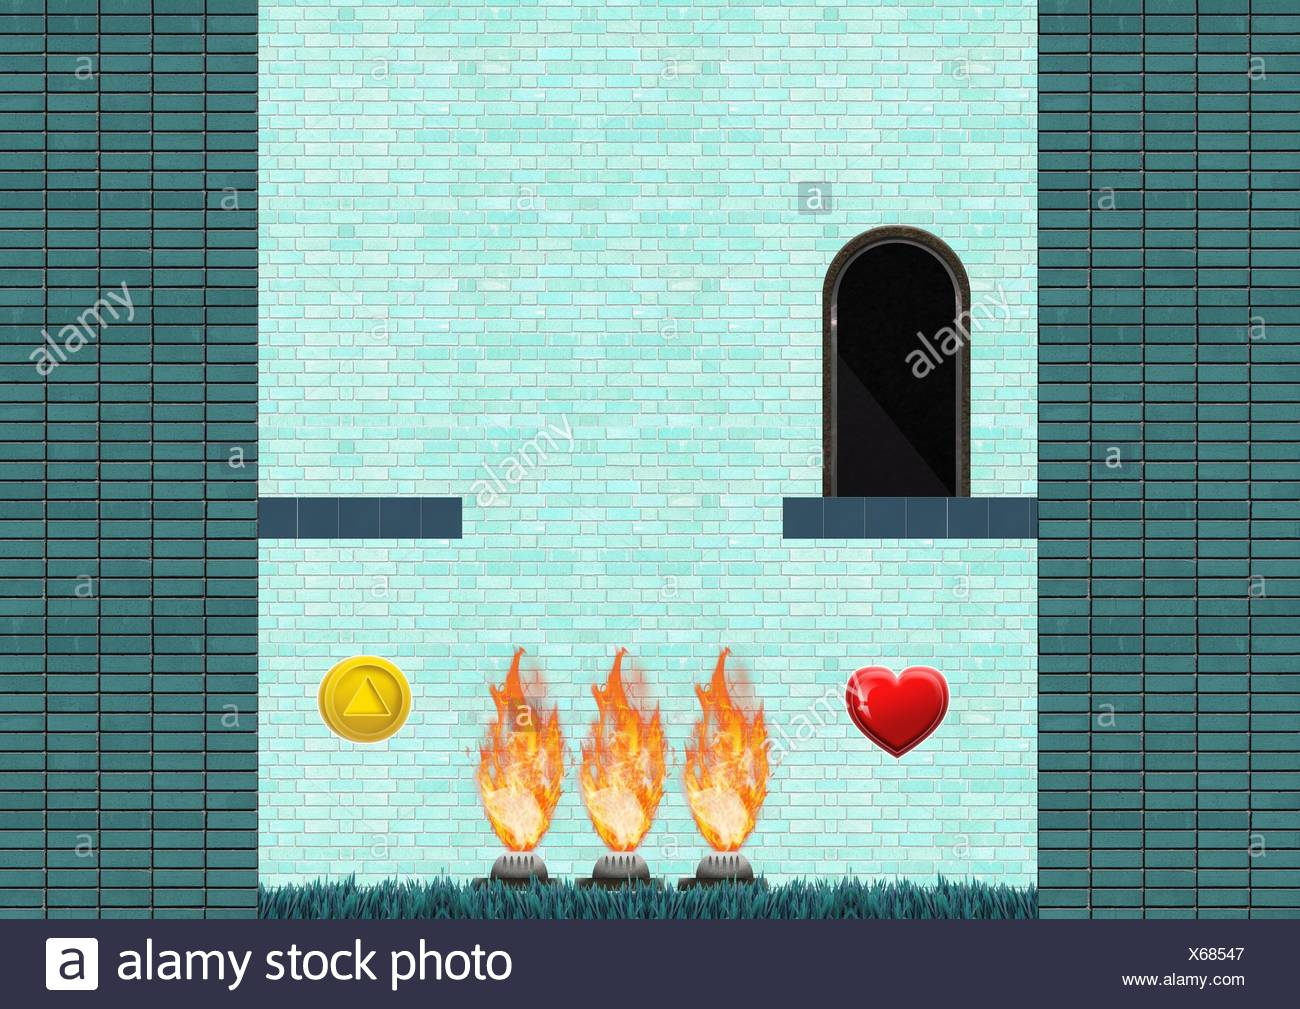 Computer Game Level with collectibles and fire traps - Stock Image